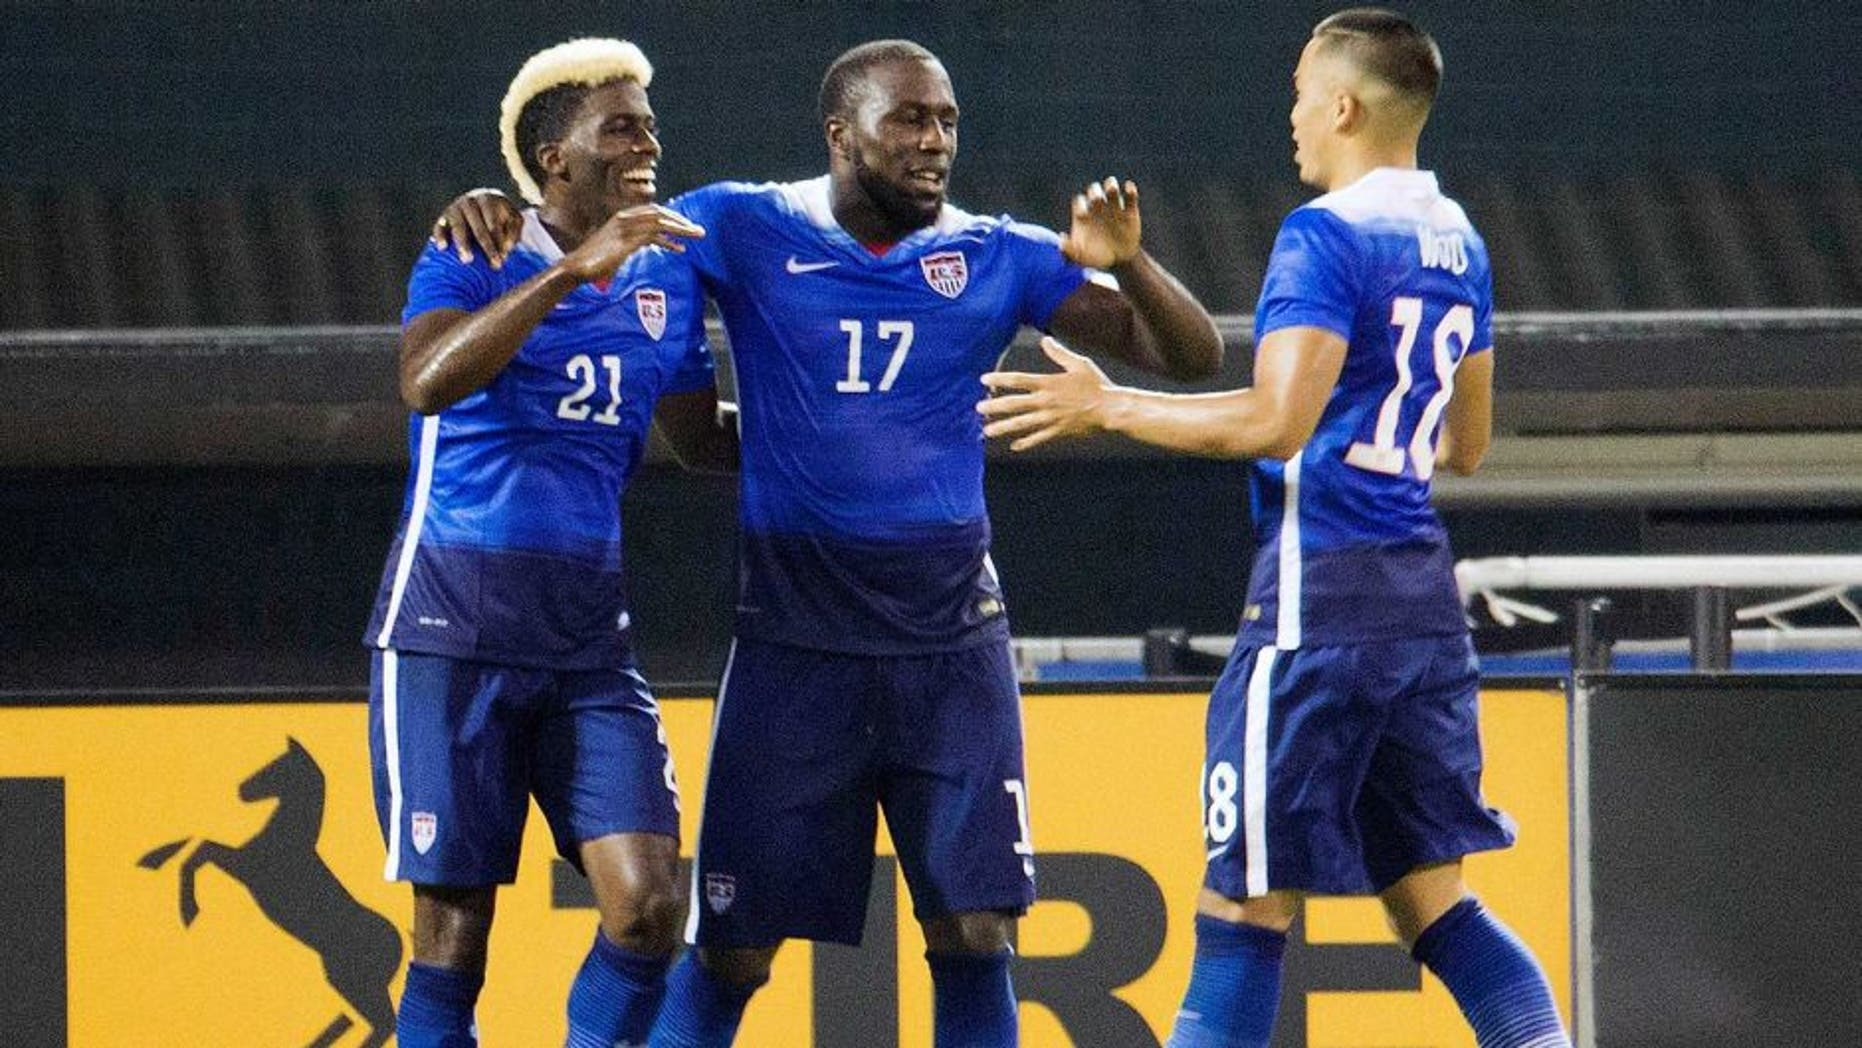 U.S. forward Jozy Altidore (17) celebrates his second goal with teammates forwards Gyasi Zardes (21) and Bobby Wood (18) during the second half of an international friendly soccer match against Peru, Friday, Sept. 4, 2015 at RFK Stadium in Washington. (AP Photo/Pablo Martinez Monsivais)